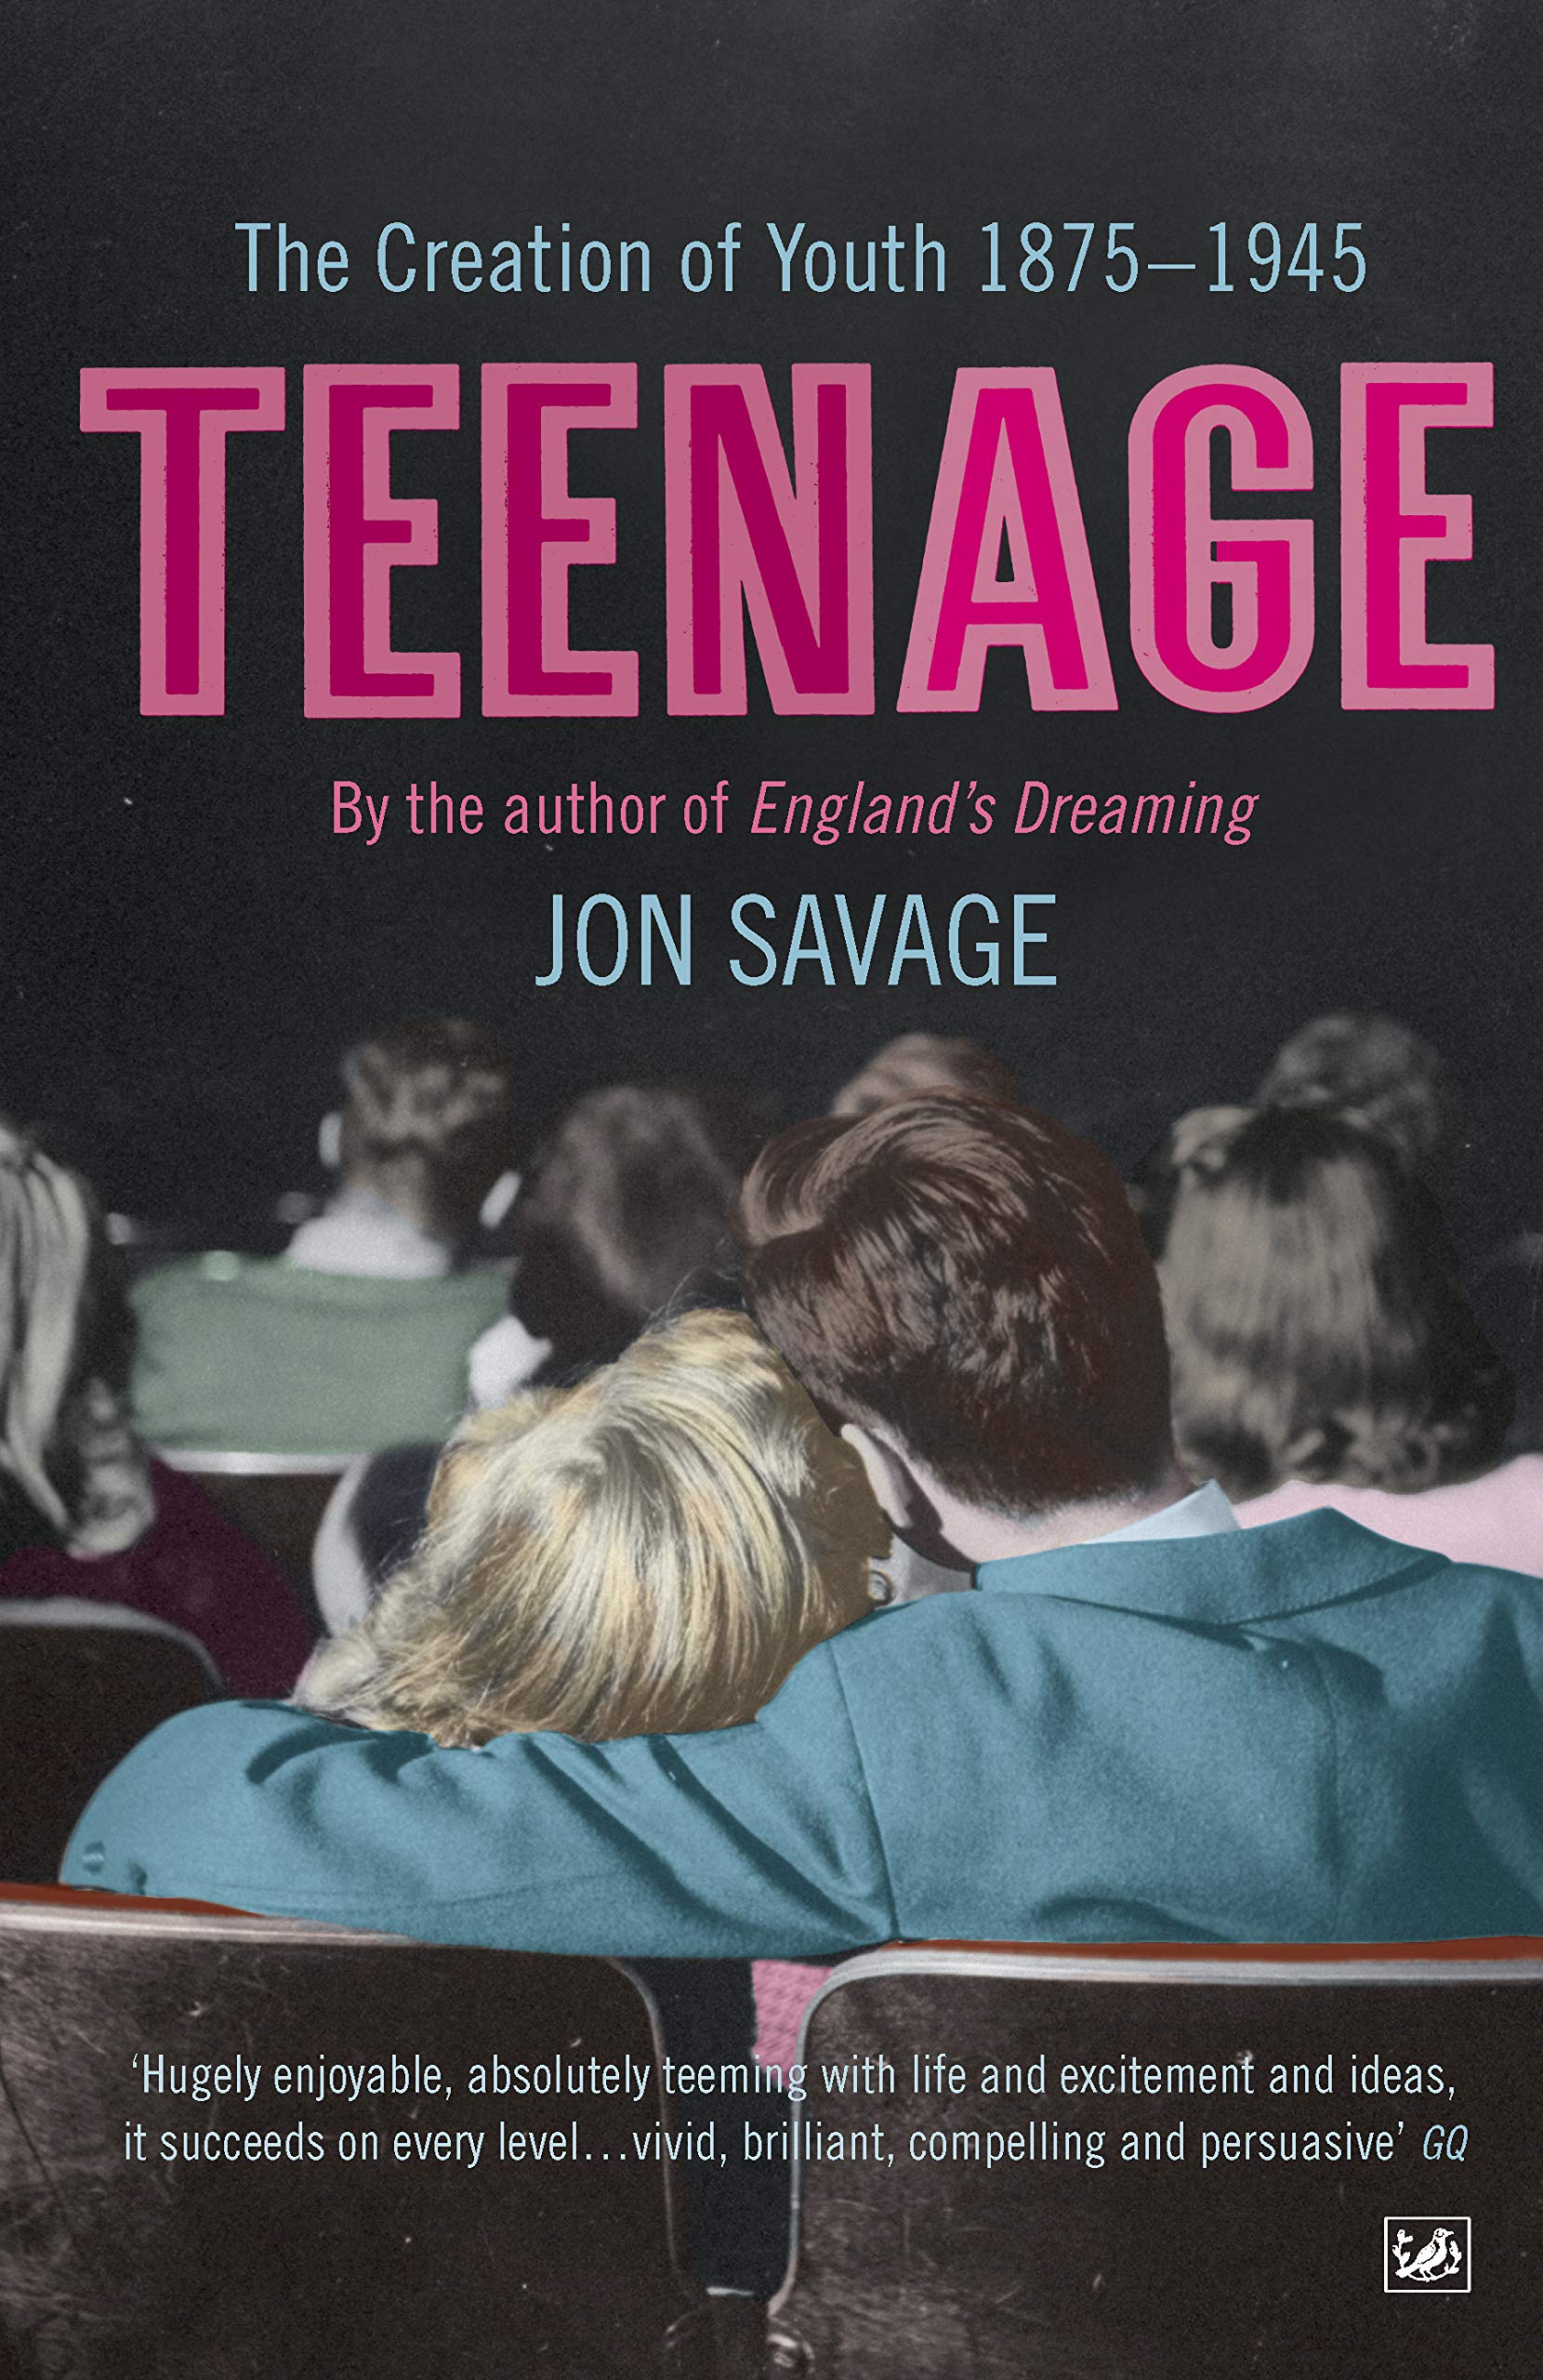 1875-1945 Teenage The Prehistory of Youth Culture